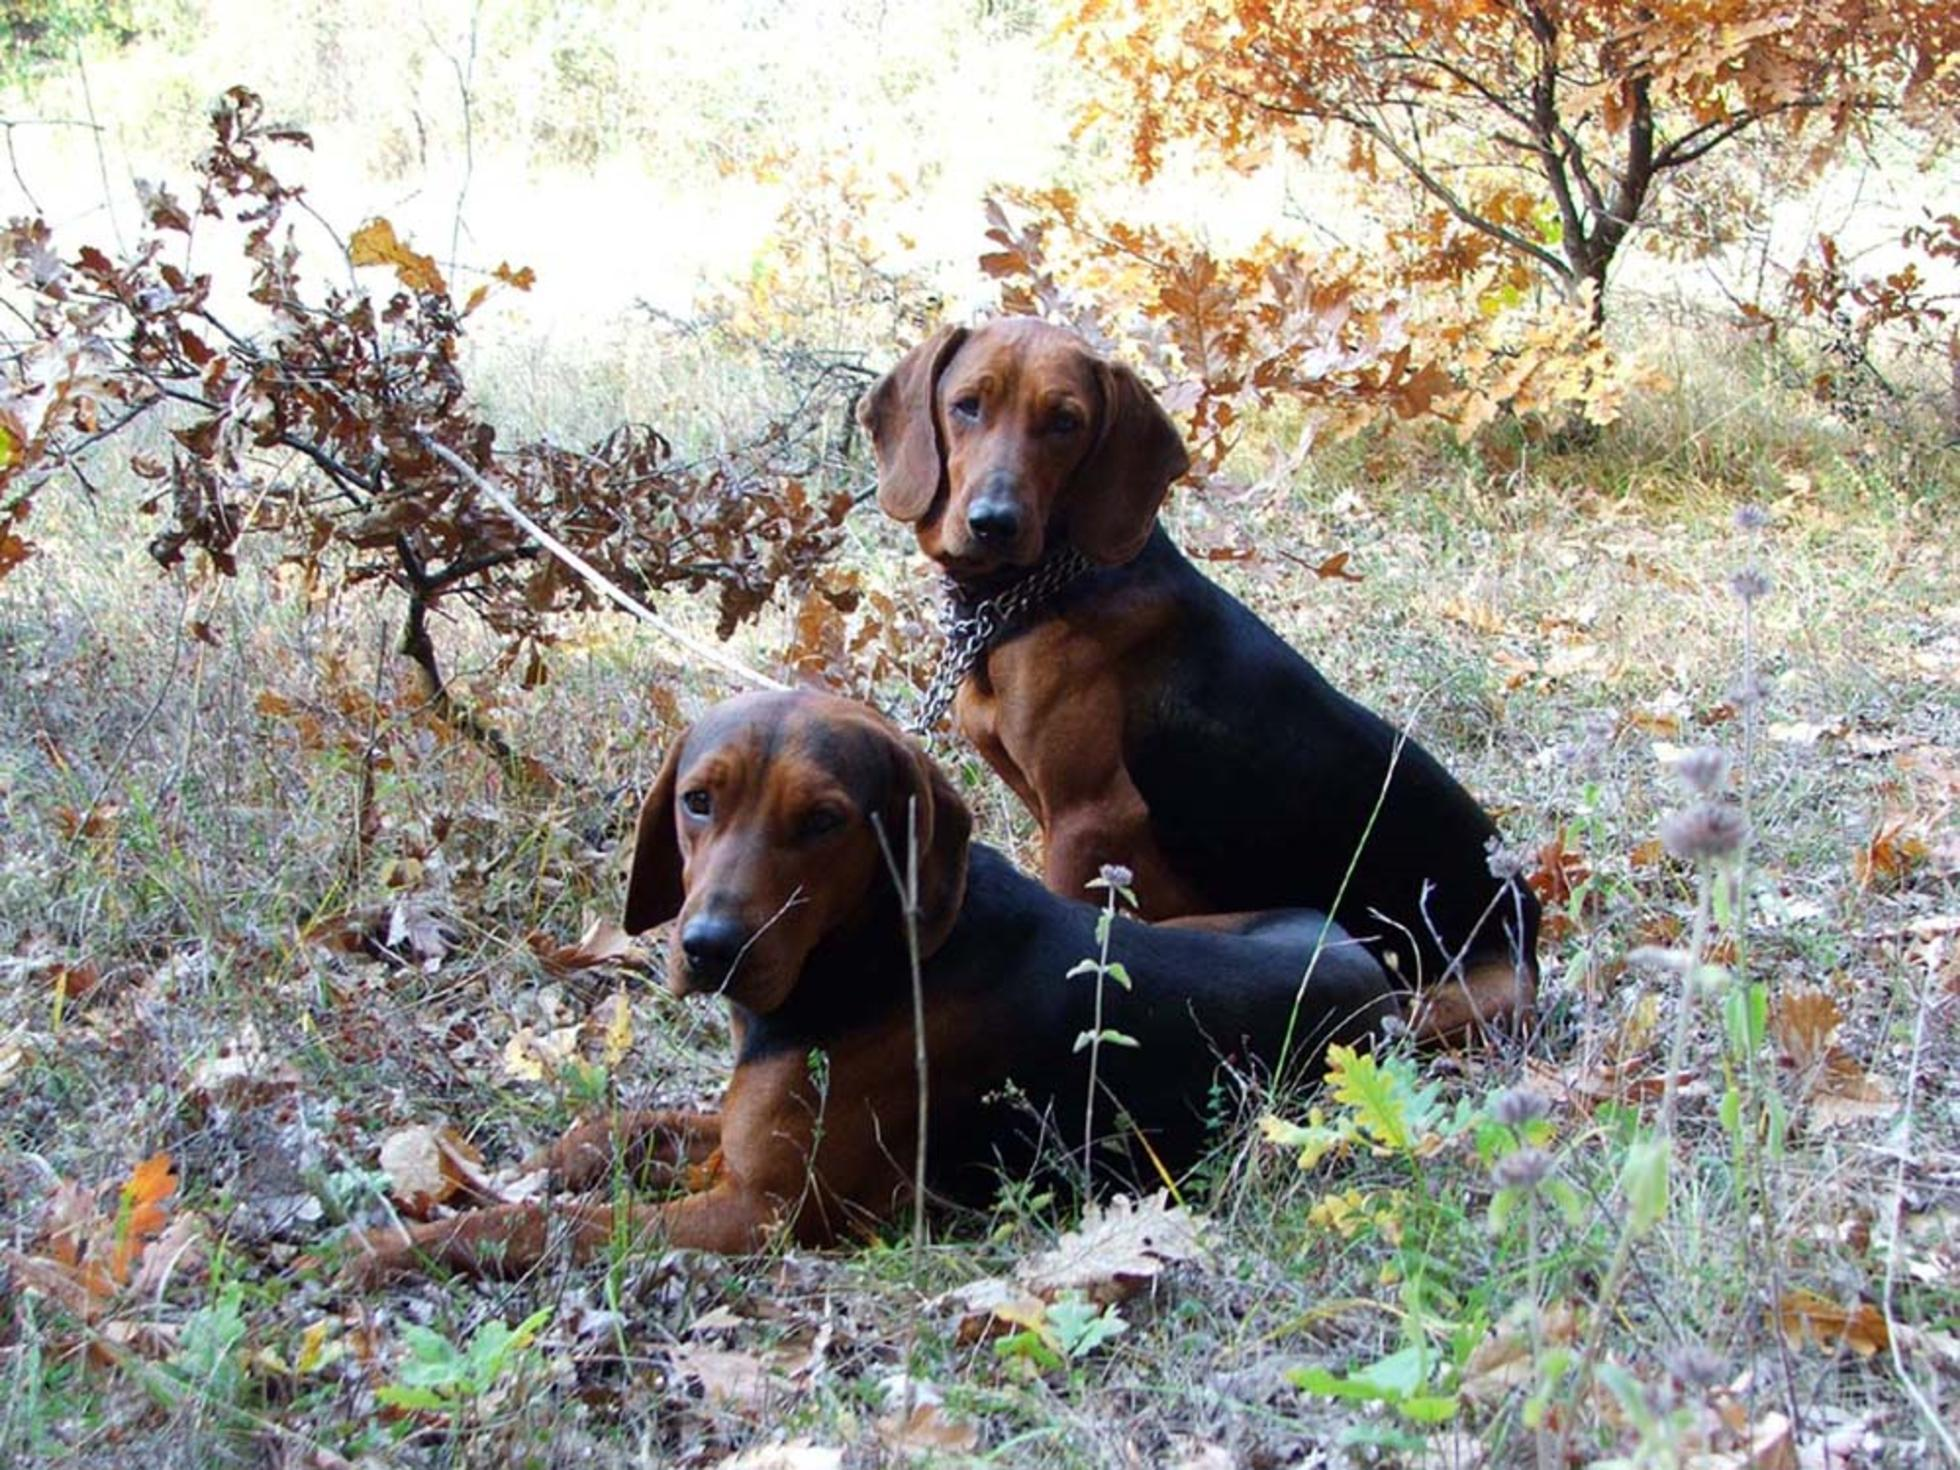 Serbian Hound dogs wallpaper